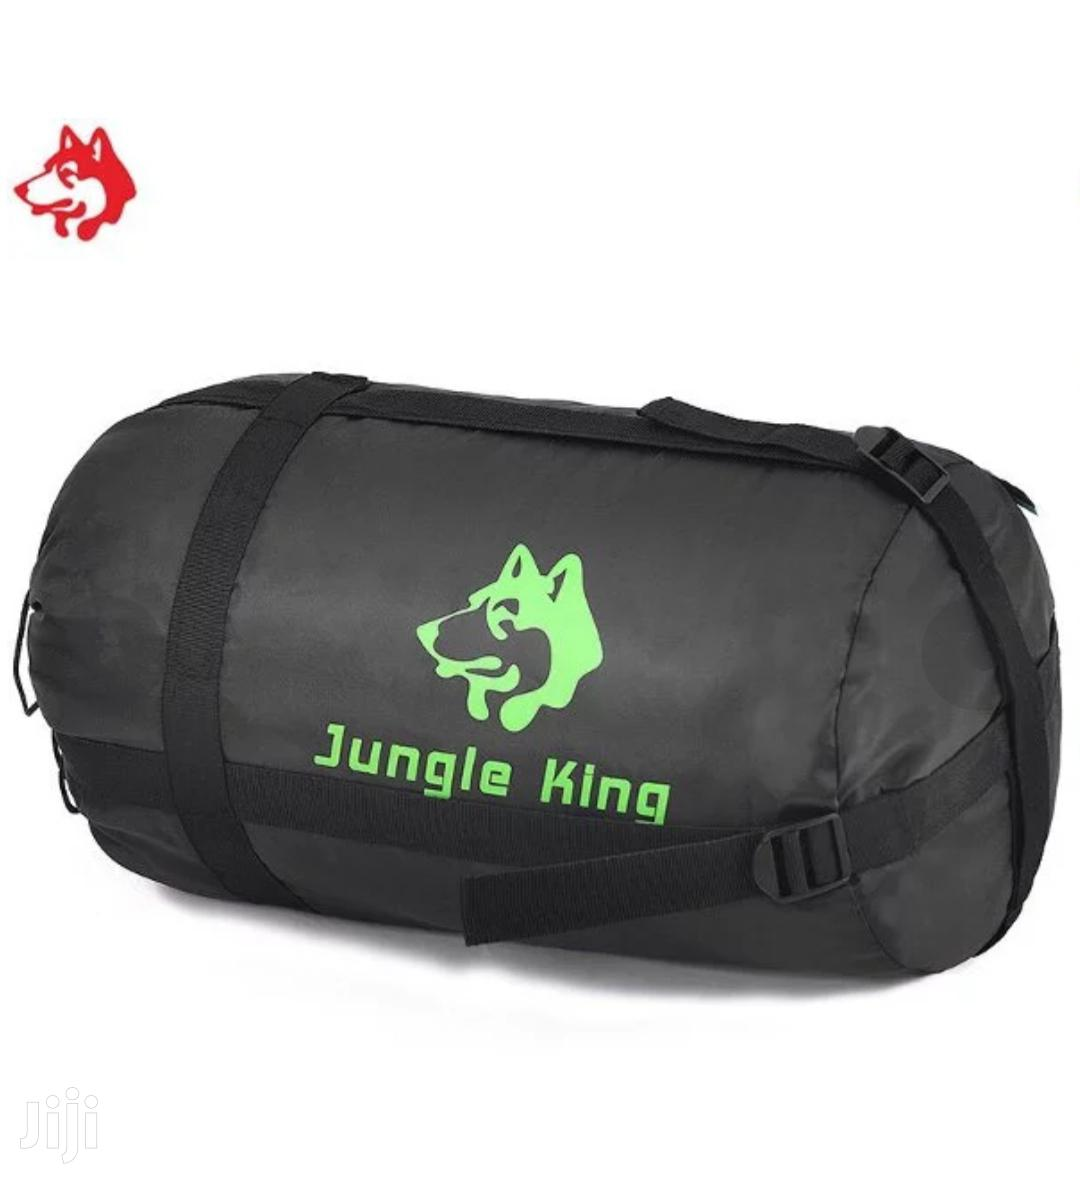 Jungle King Waterproof Outdoor Sleeping Bag